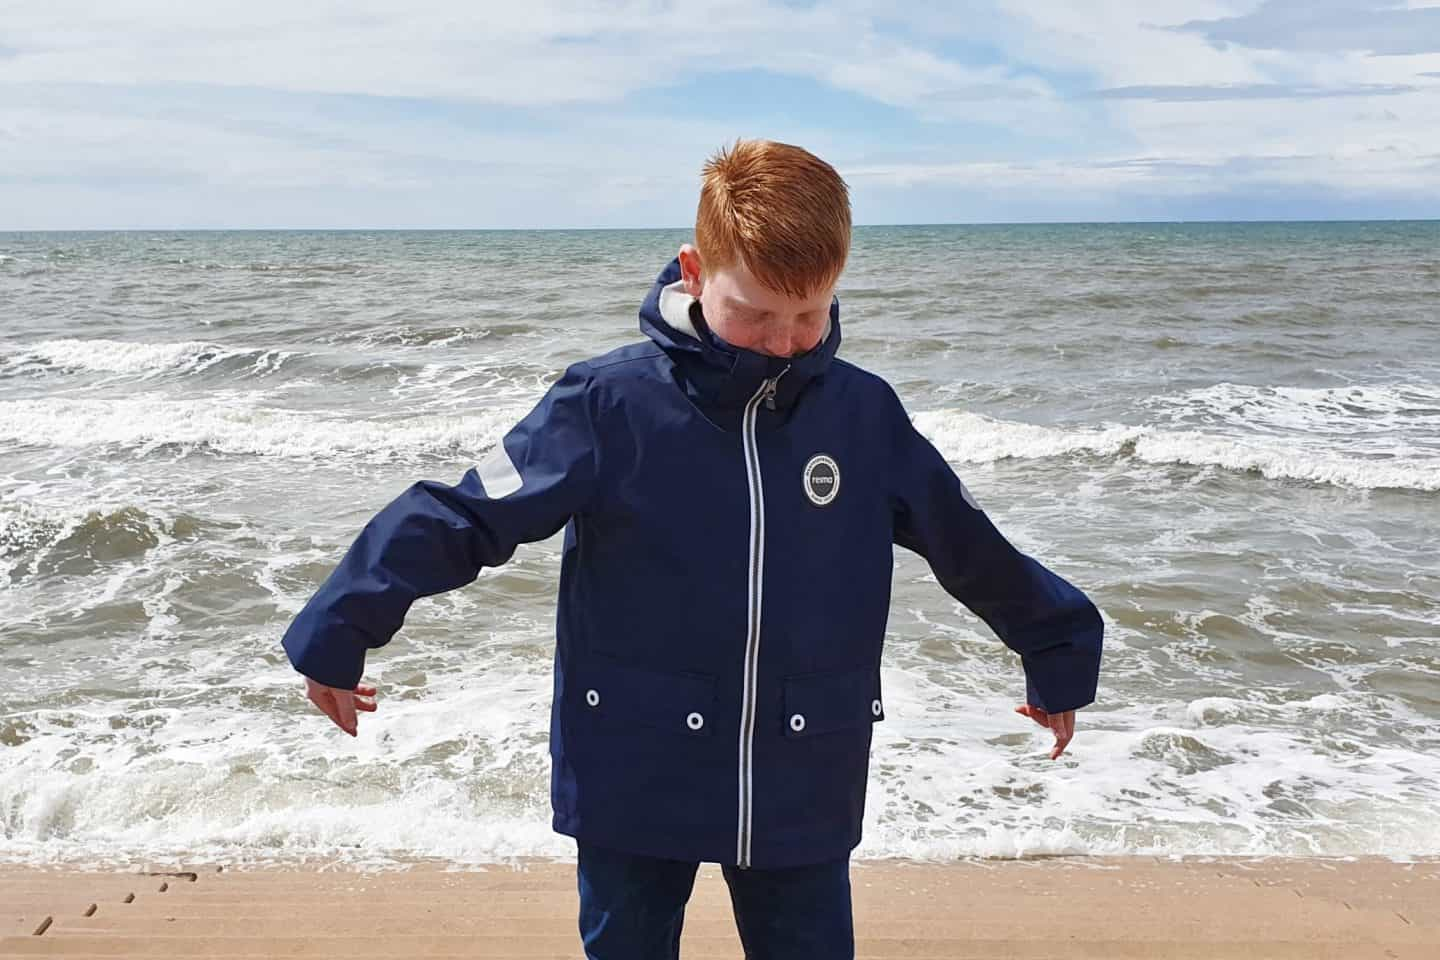 Boy dancing on the sea front wearing navy waterproof jacket with white detailing